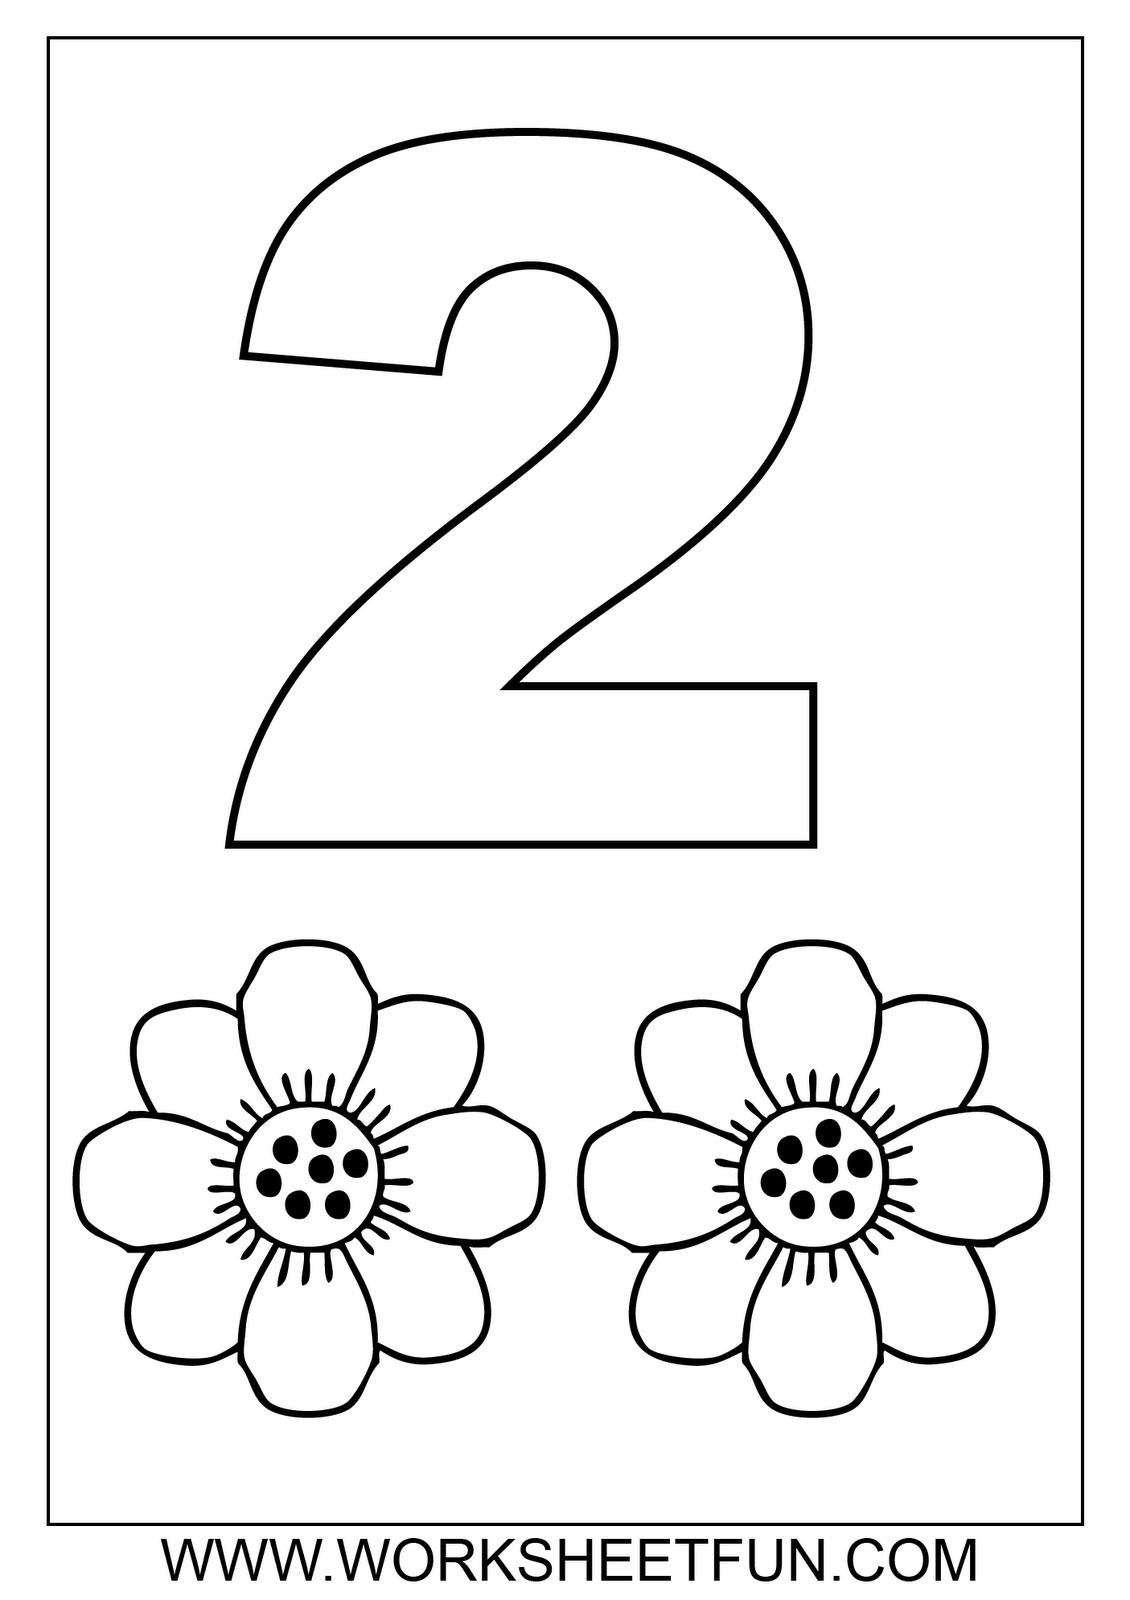 Printable color pages for kindergarten - Preschool Number Coloring Pages Download Coloring Page